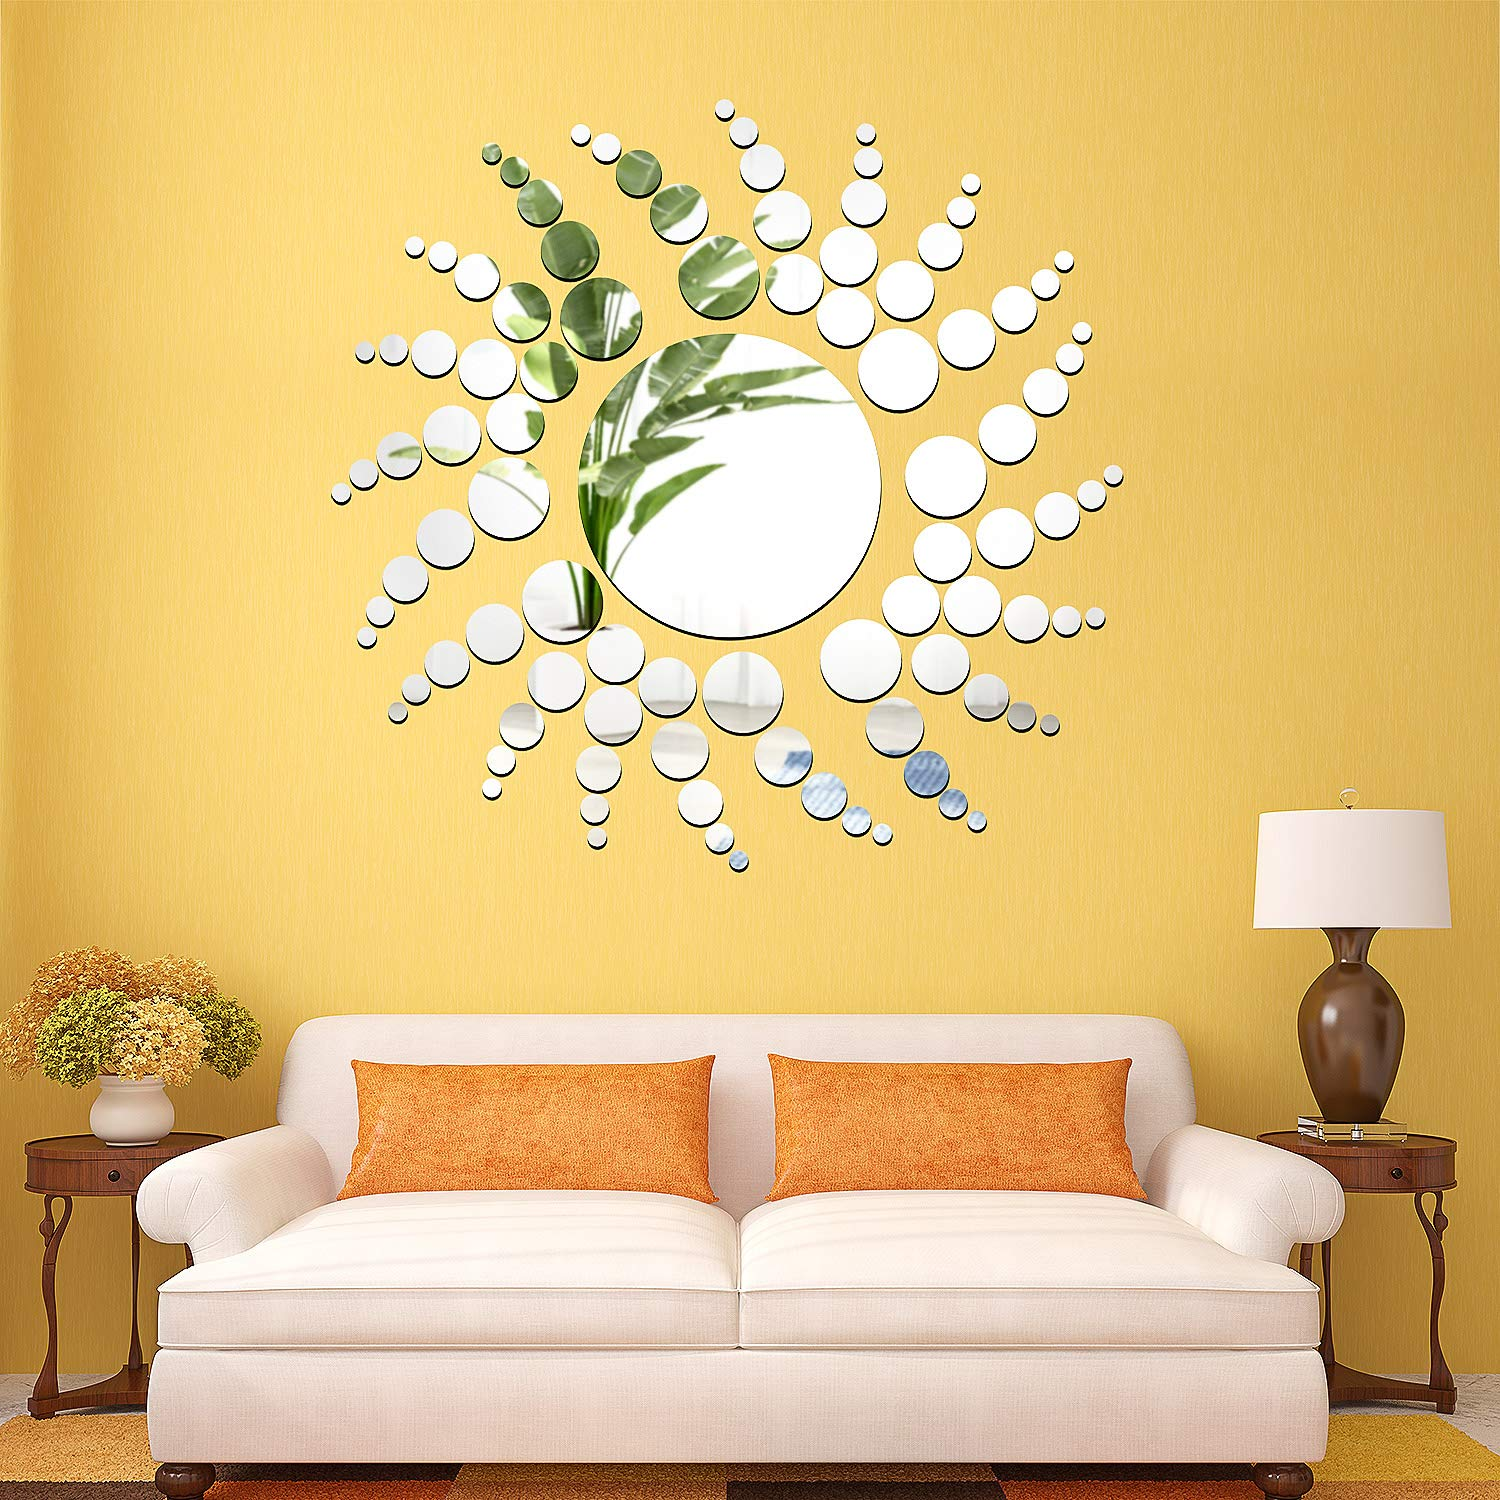 Removable Acrylic Mirror Setting Wall Sticker Decal for Home Living Room Bedroom Decor (Style 9, 48 Pieces)